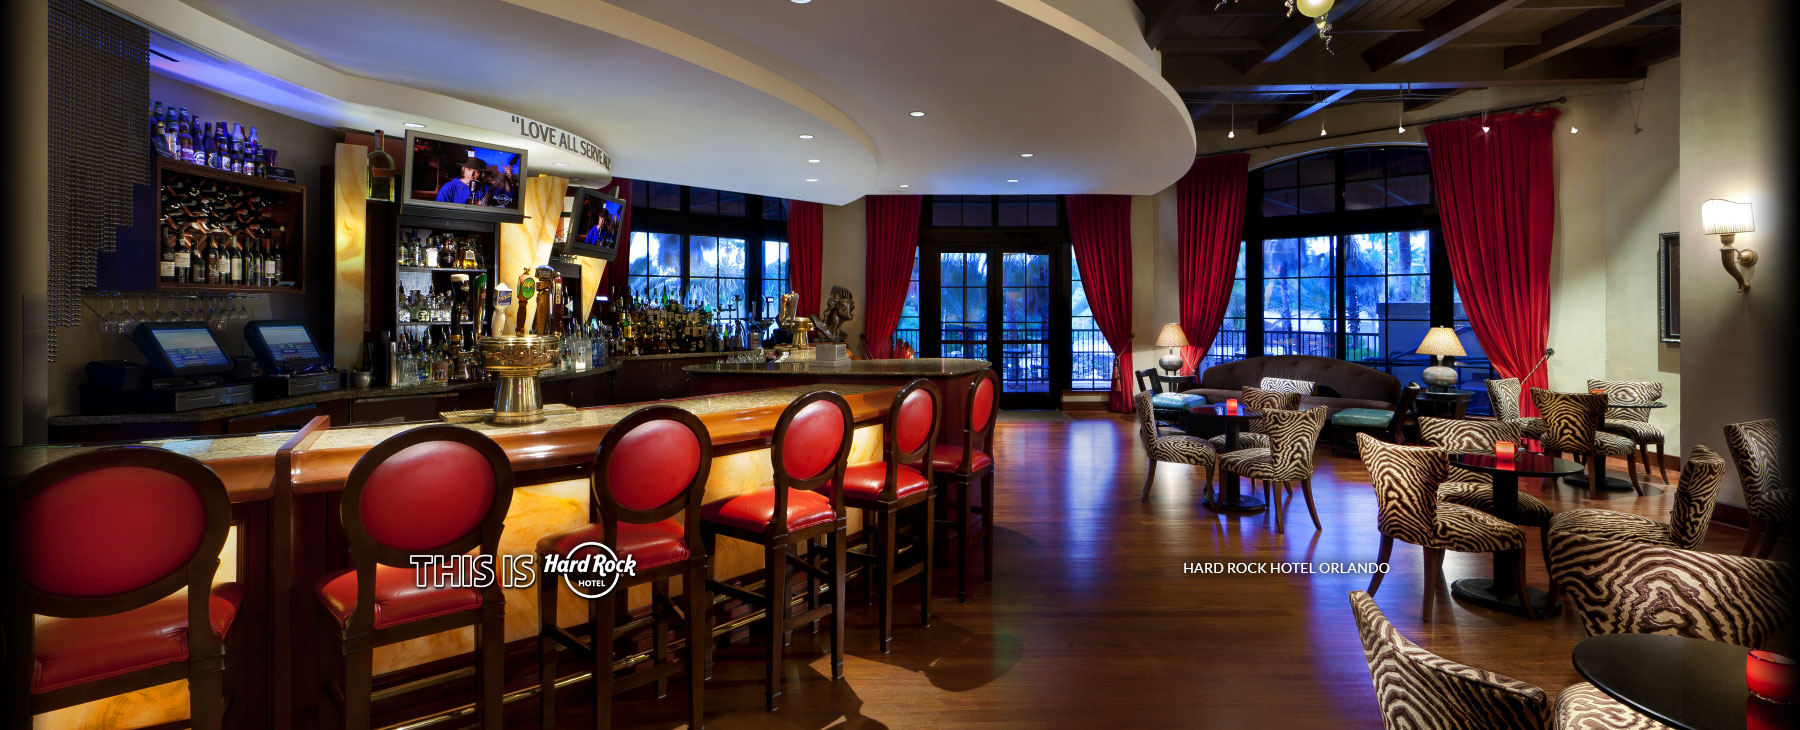 Go to Hard Rock Hotel Orlando website